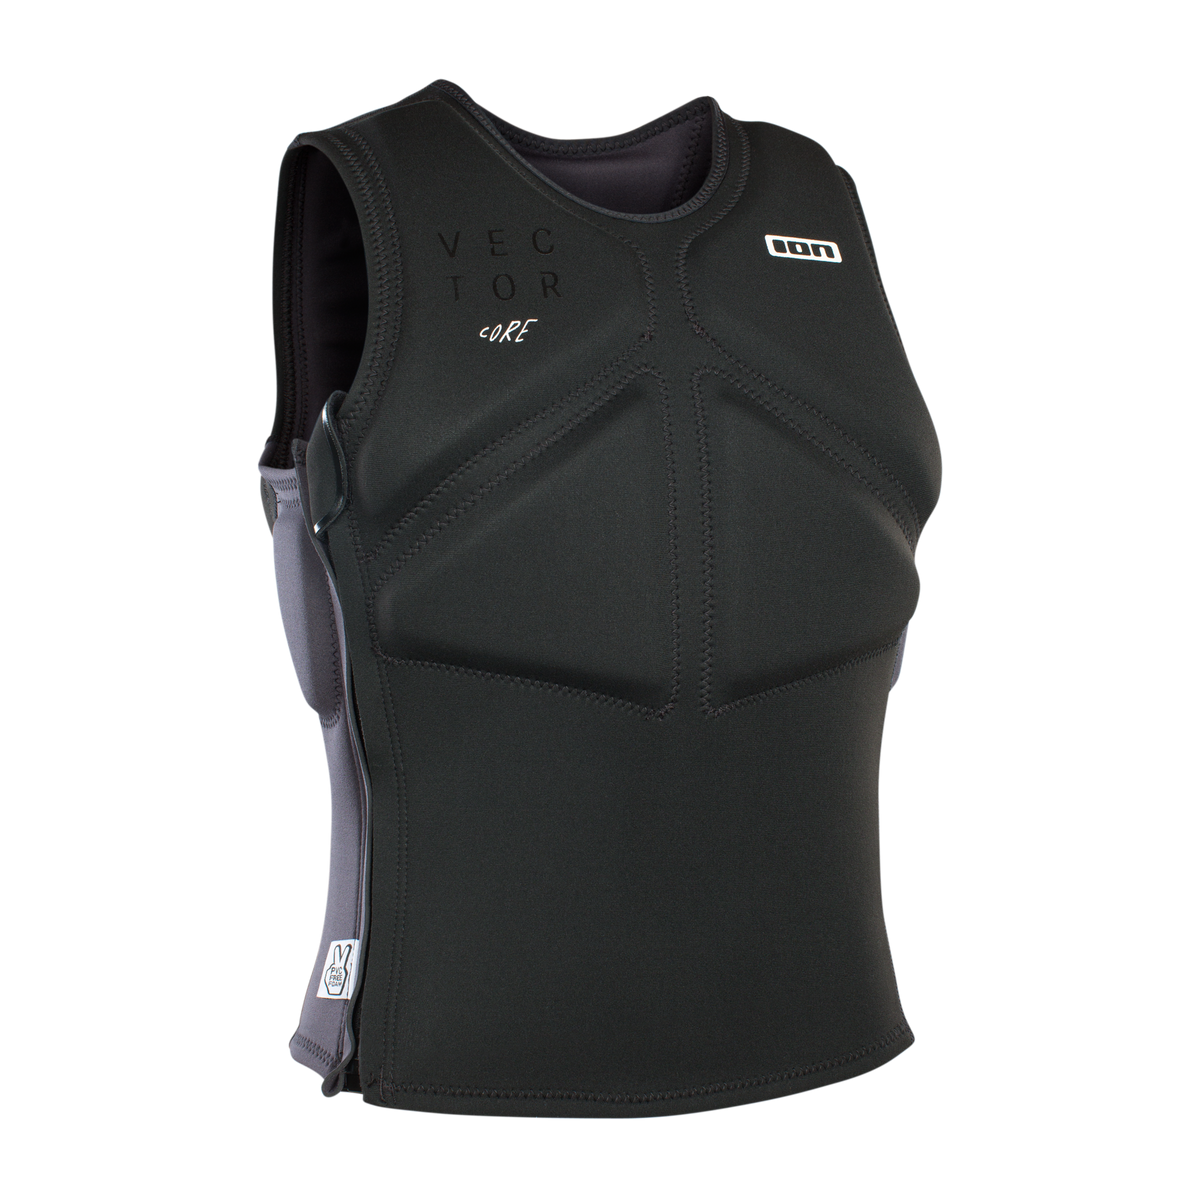 ION VECTOR VEST CORE SZ 2020